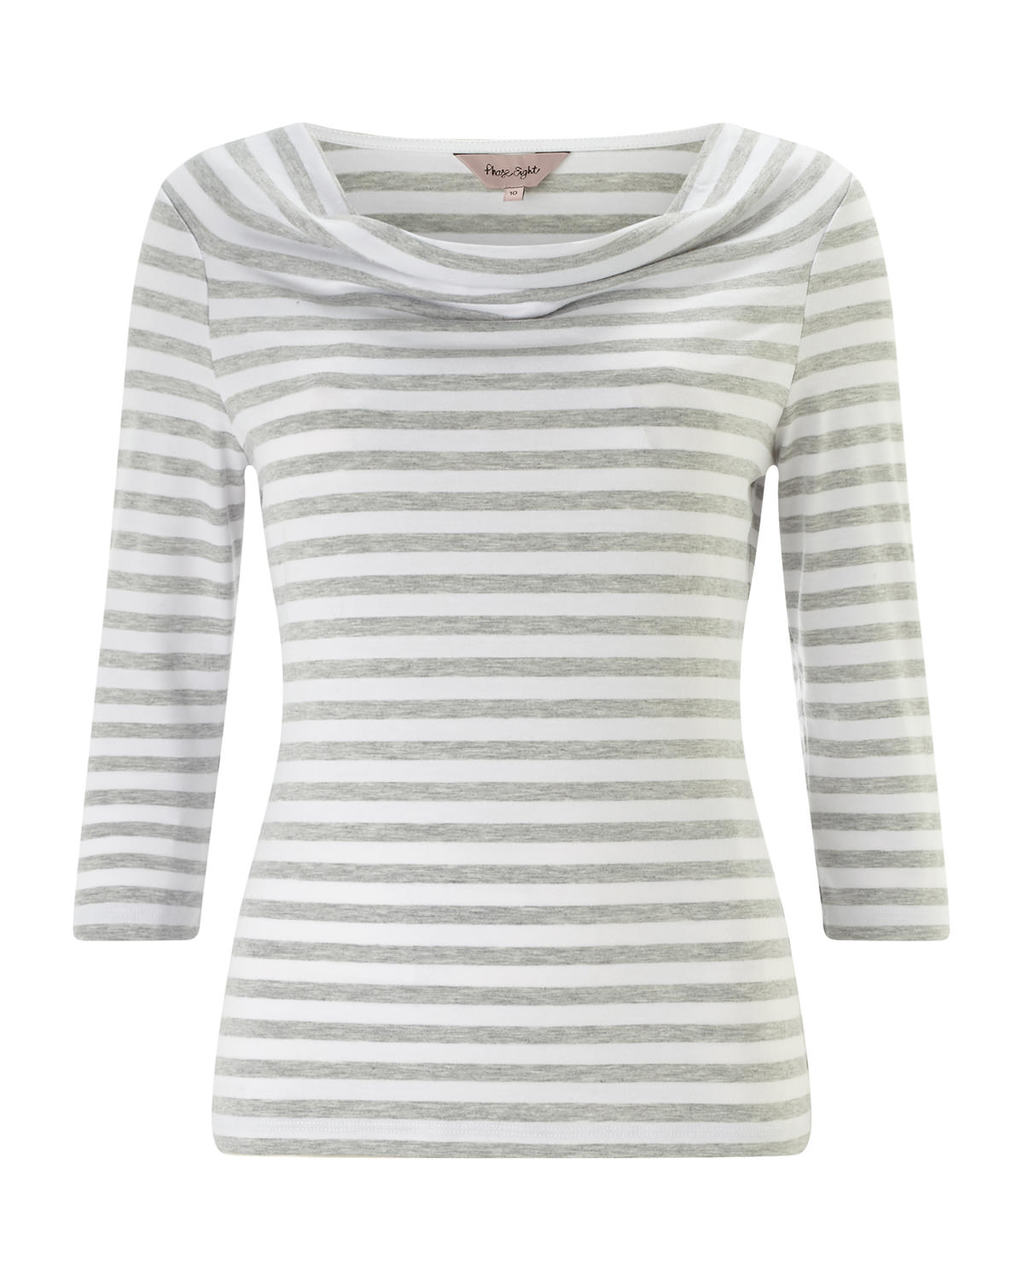 Stella Stripe Top - neckline: cowl/draped neck; pattern: horizontal stripes; style: t-shirt; predominant colour: white; secondary colour: mid grey; occasions: casual; length: standard; fibres: cotton - stretch; fit: body skimming; sleeve length: 3/4 length; sleeve style: standard; texture group: jersey - clingy; pattern type: fabric; pattern size: standard; season: s/s 2016; wardrobe: basic